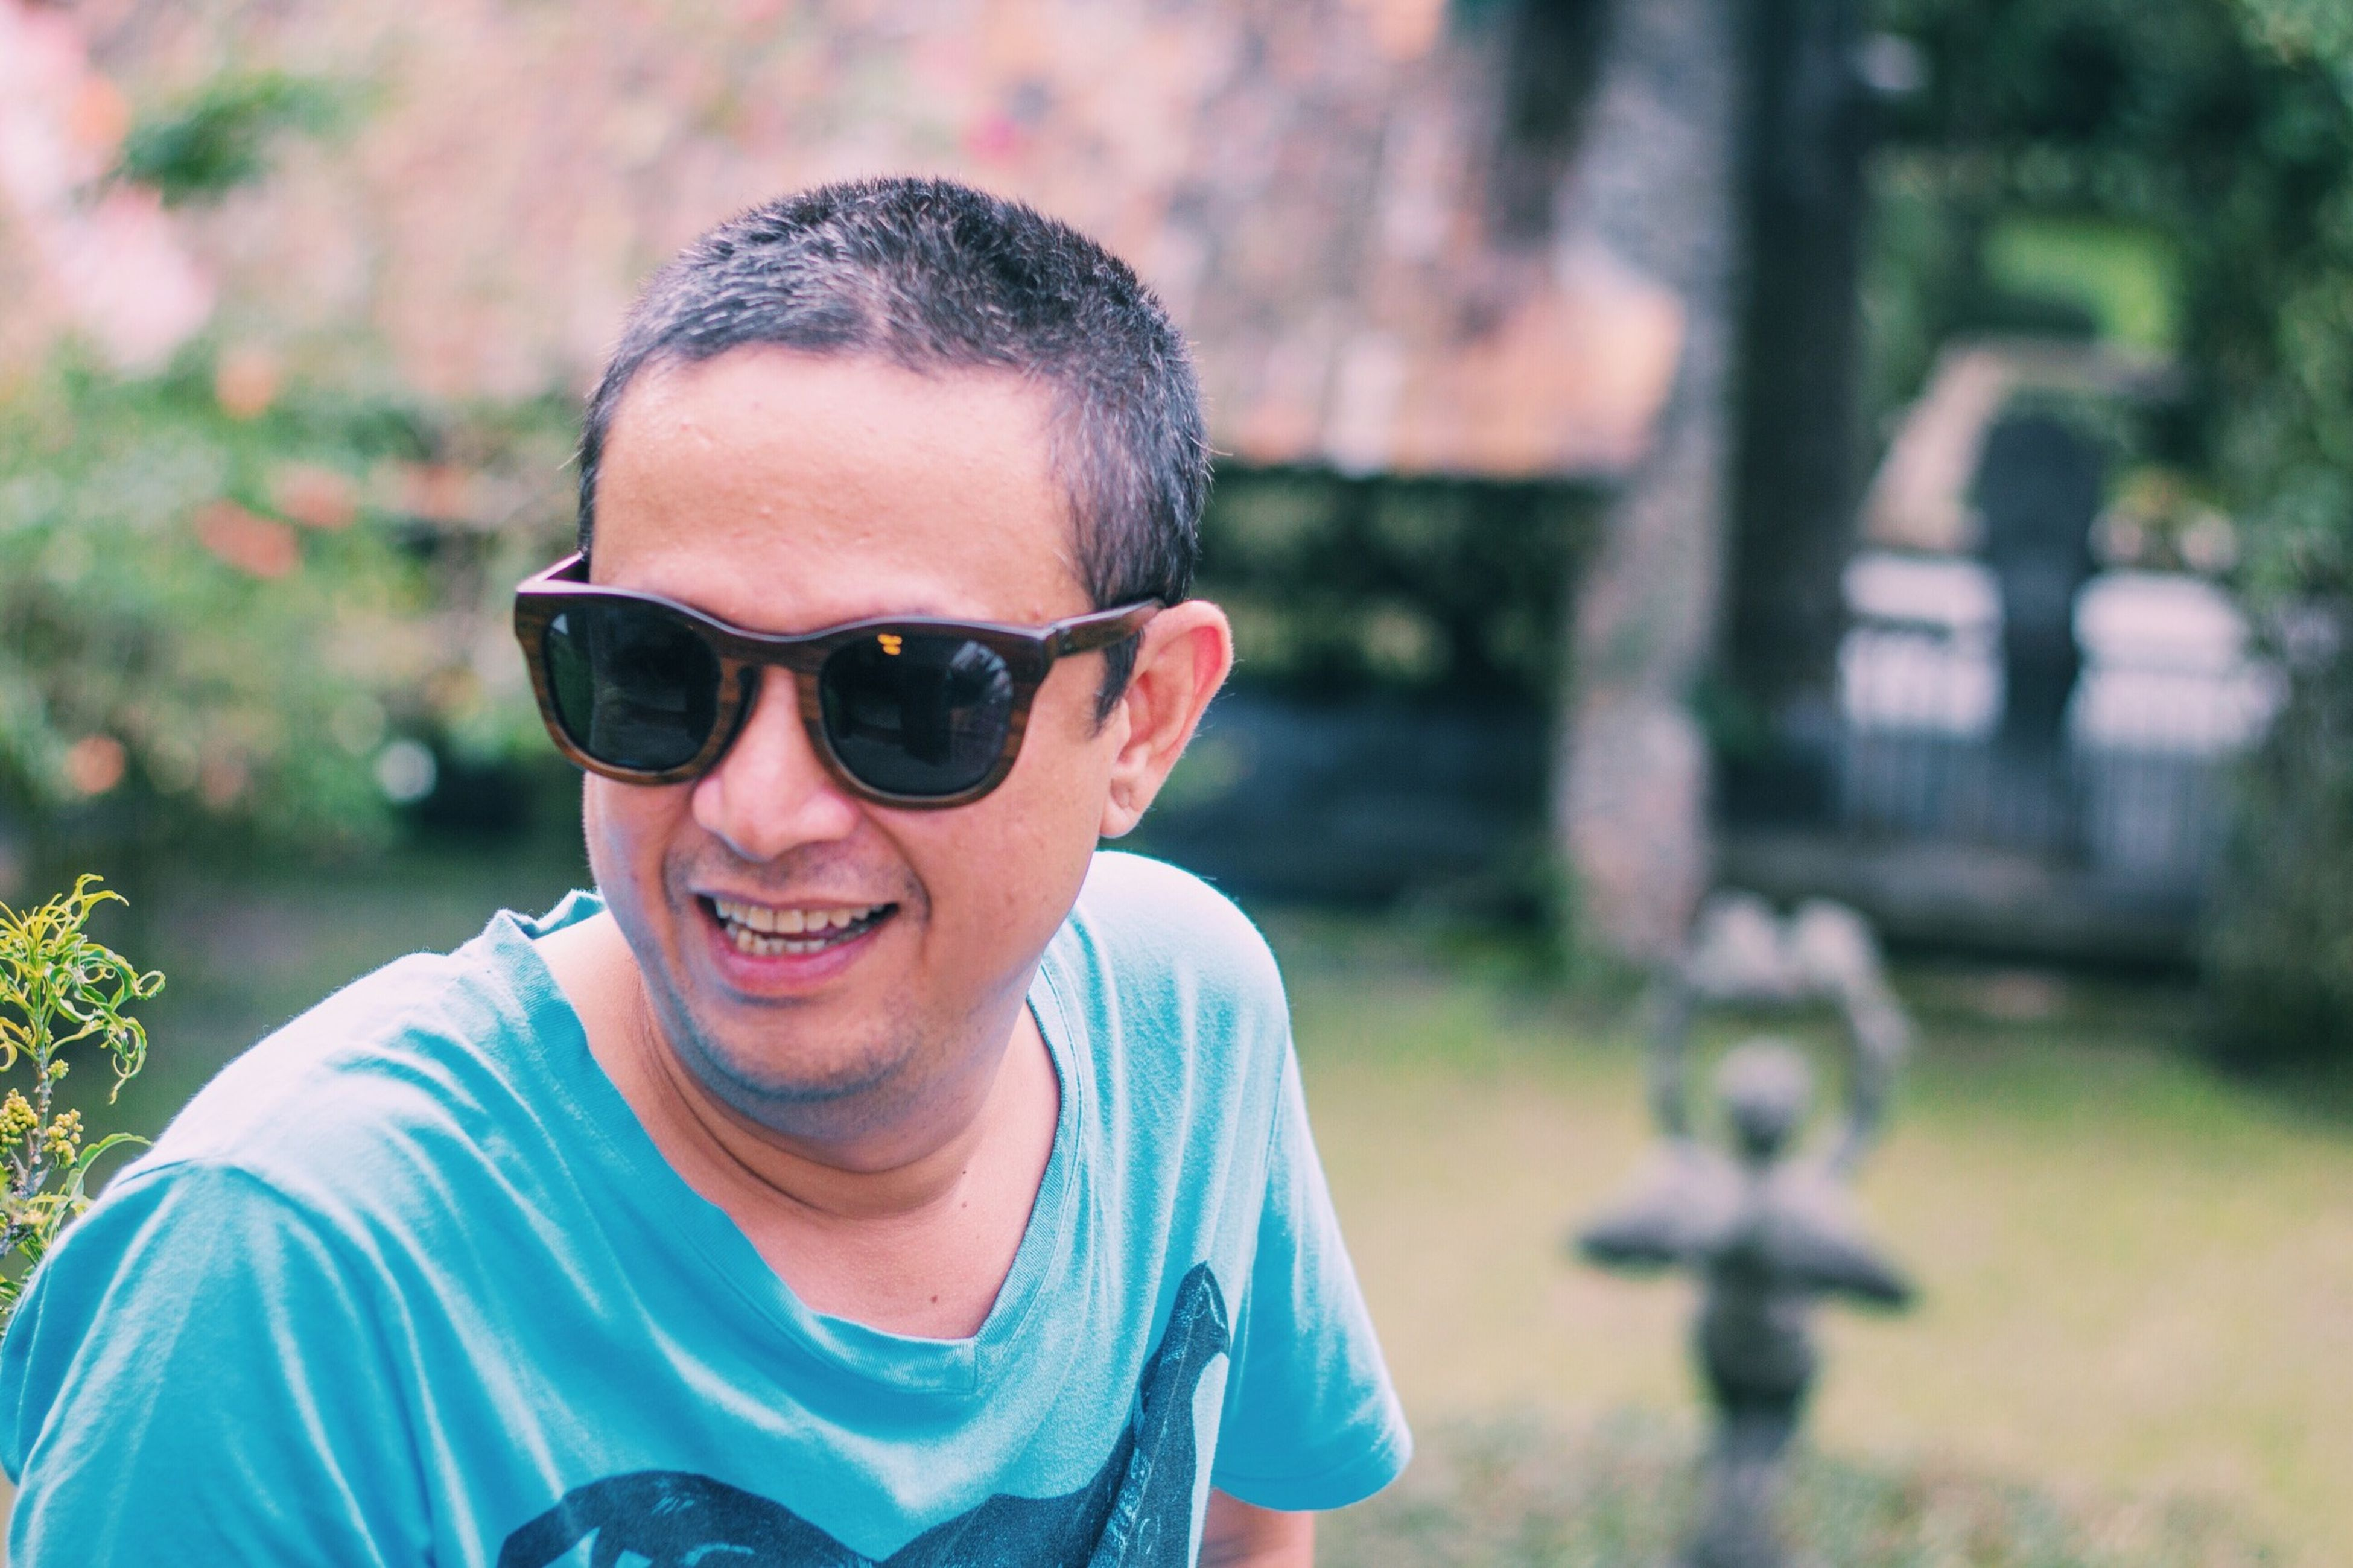 person, portrait, looking at camera, lifestyles, leisure activity, headshot, focus on foreground, smiling, front view, sunglasses, casual clothing, happiness, elementary age, boys, childhood, young adult, close-up, day